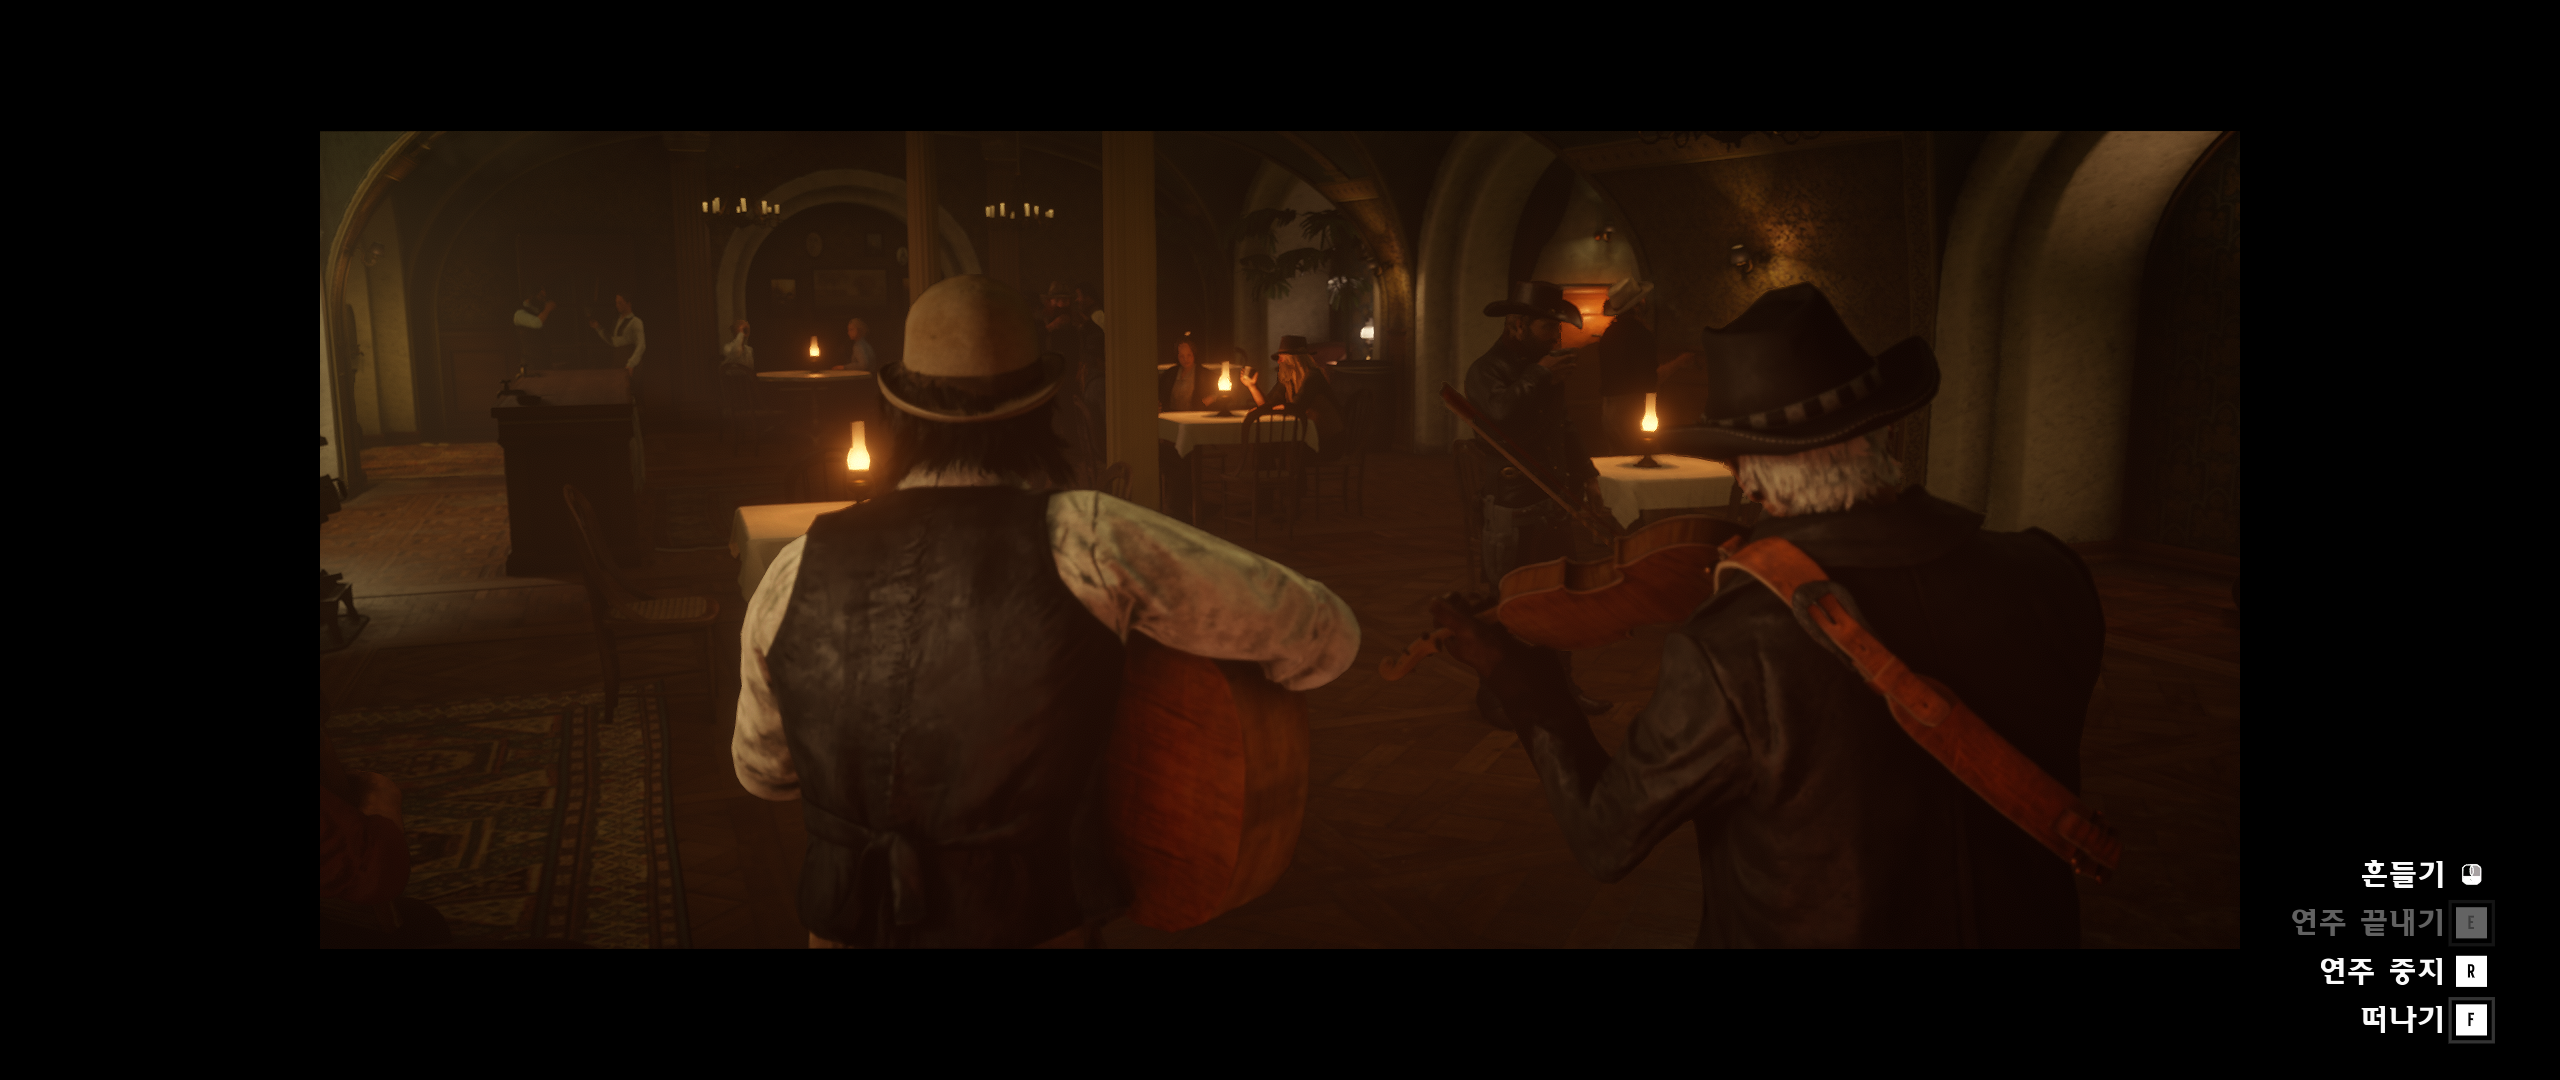 Red Dead Redemption 2 Screenshot 2019.12.15 - 01.50.38.79